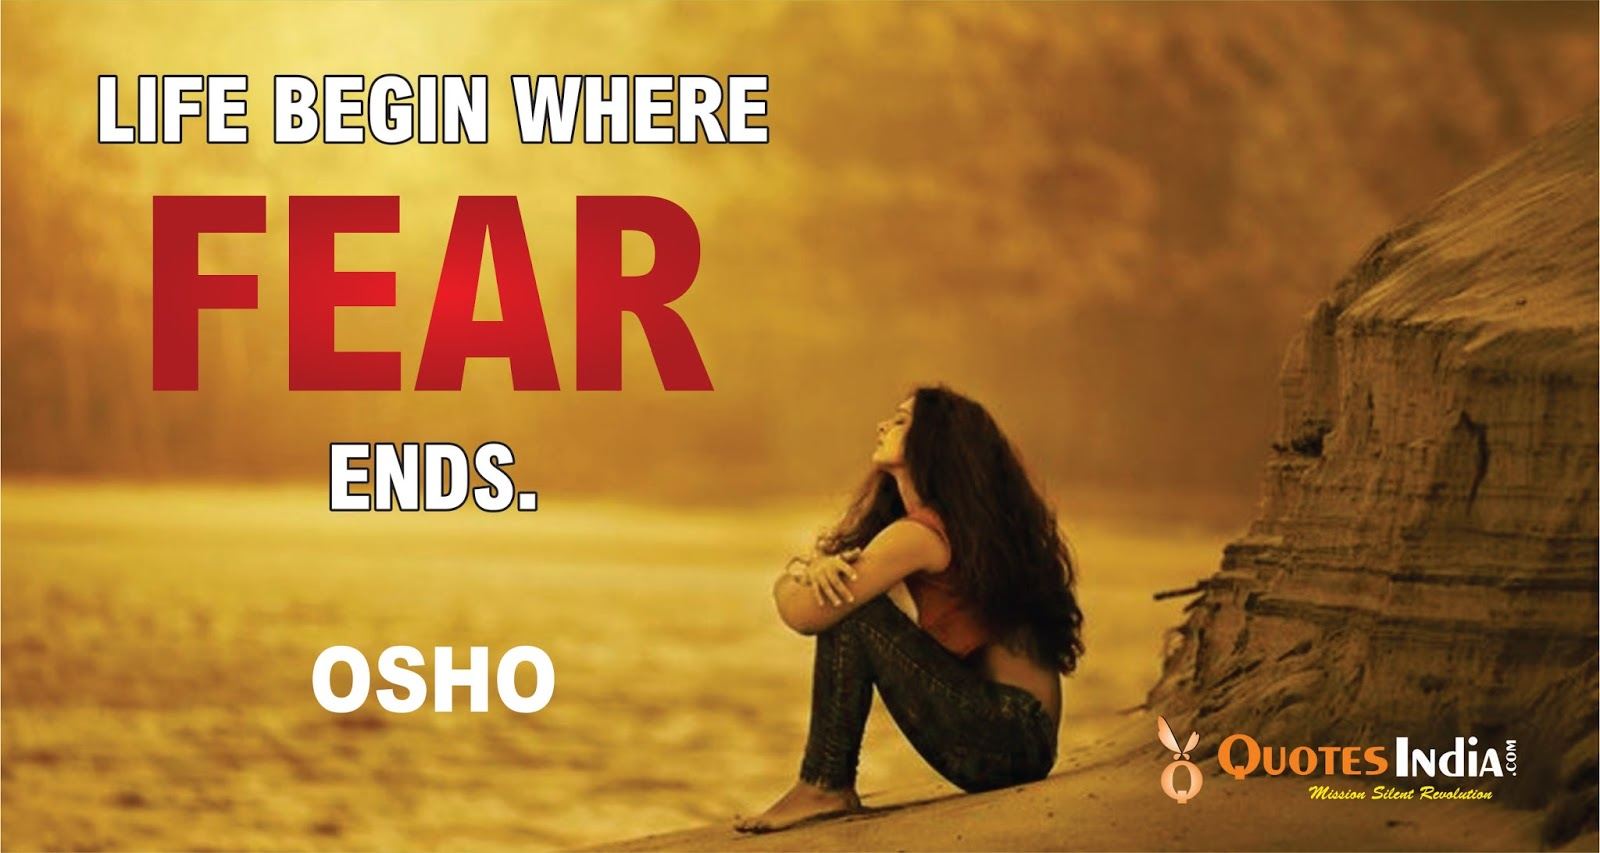 Life Begin Where Fear Ends Osho Quotes India Quotes Health